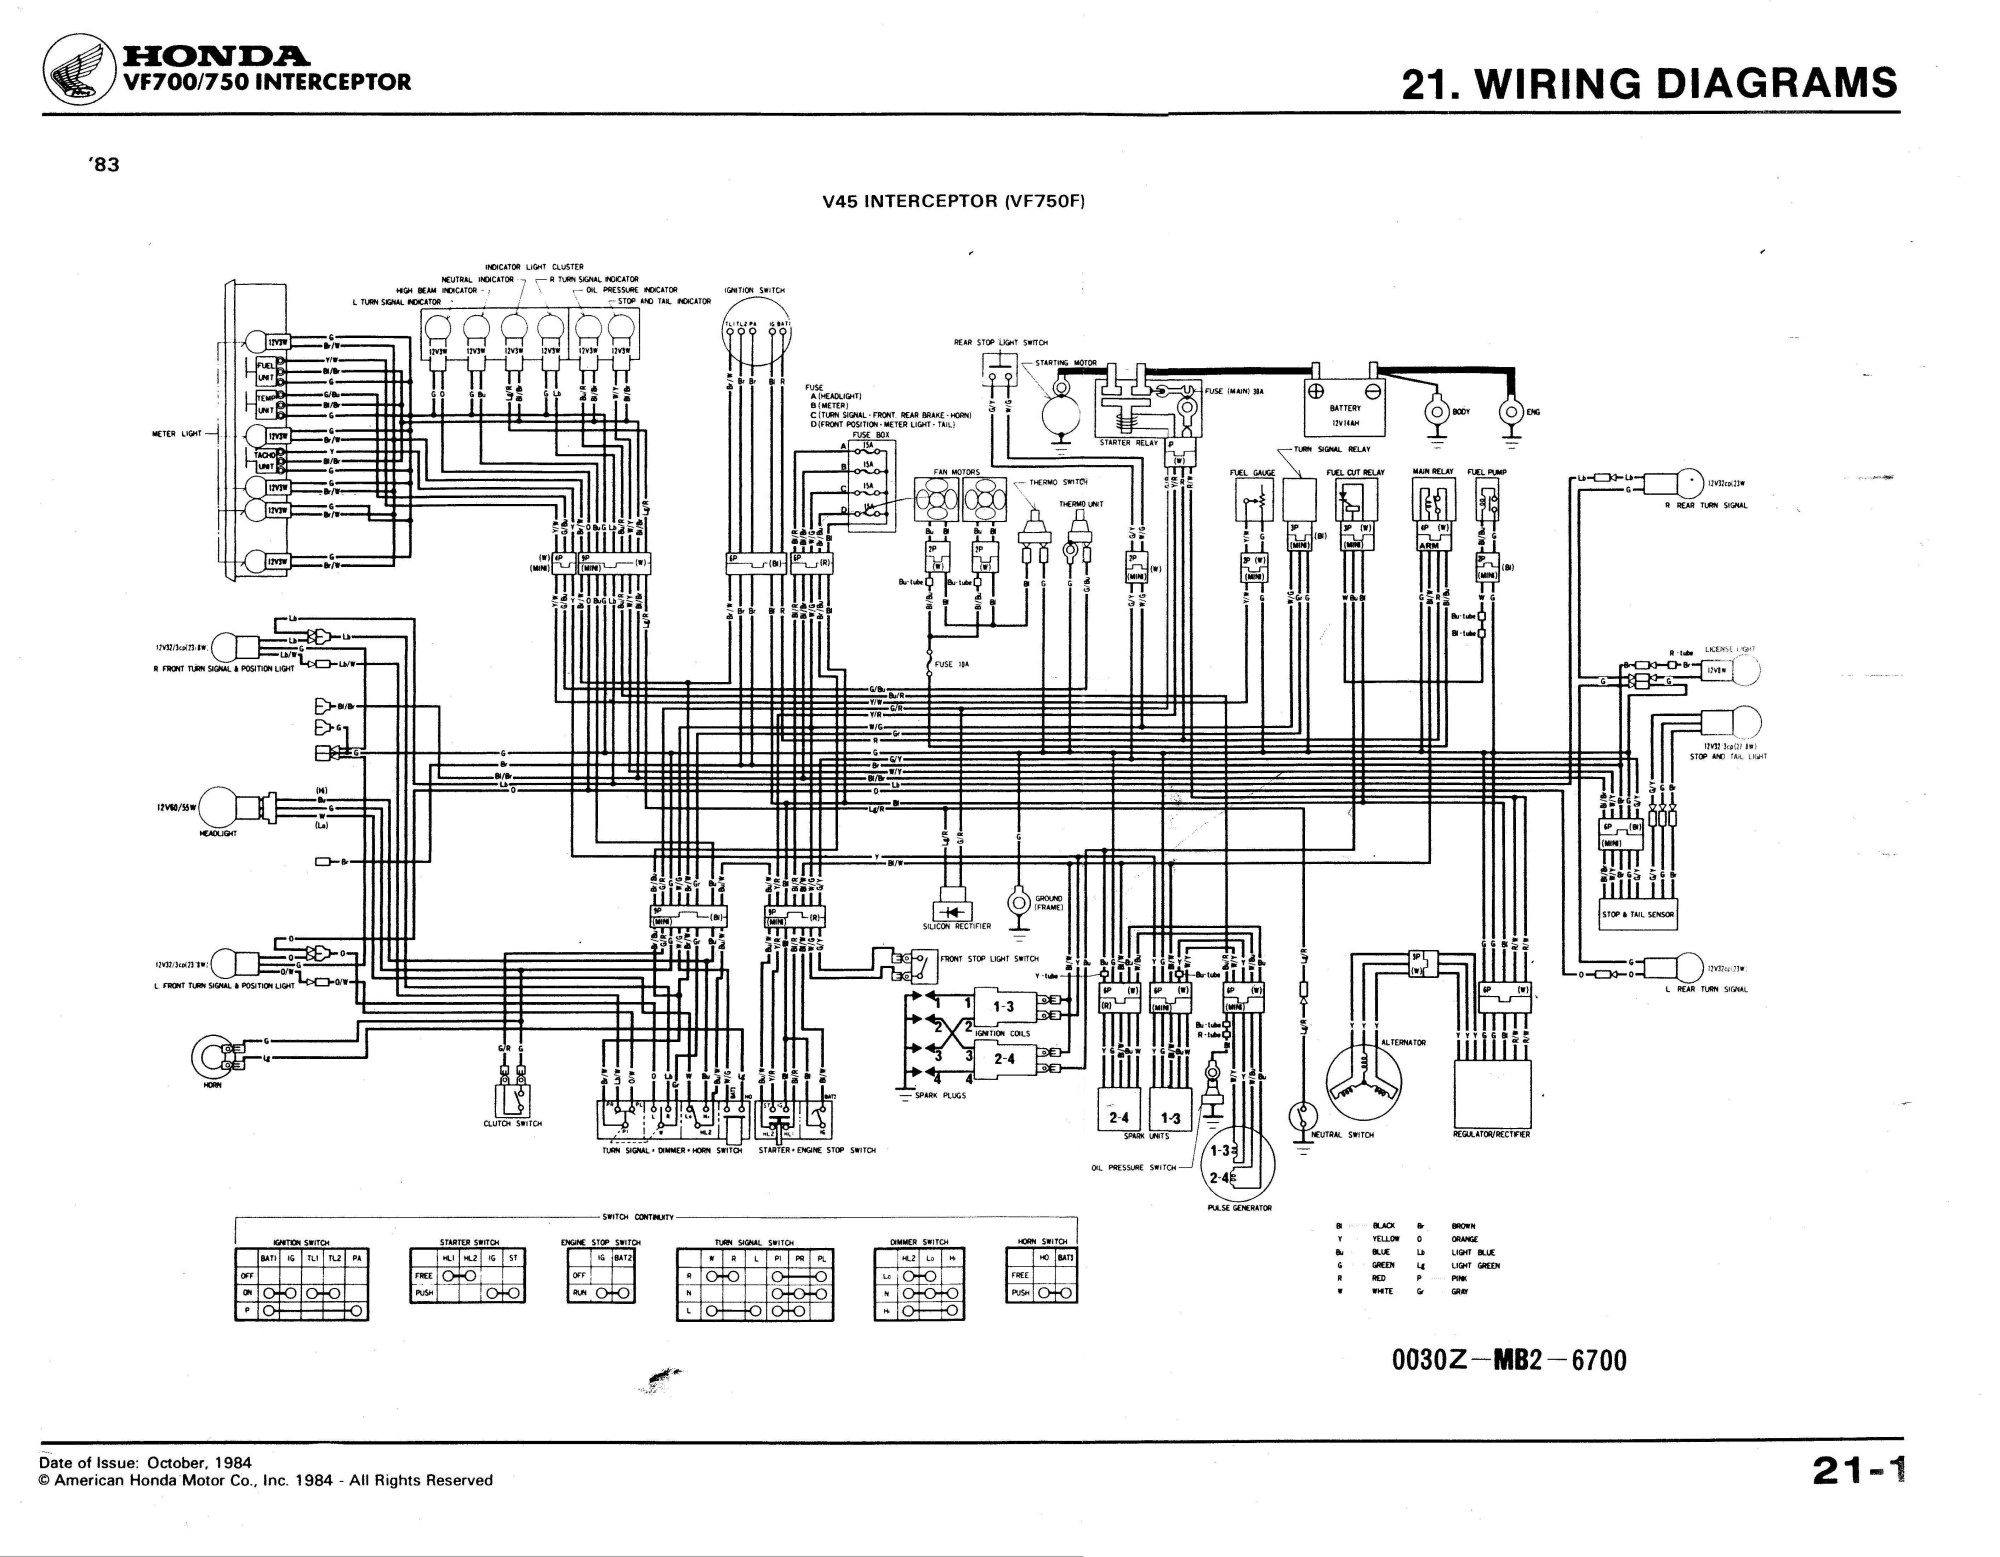 hight resolution of honda vt500 wiring diagram wiring diagramhonda vt500 wiring diagram wiring library1983 honda shadow 750 wiring diagram